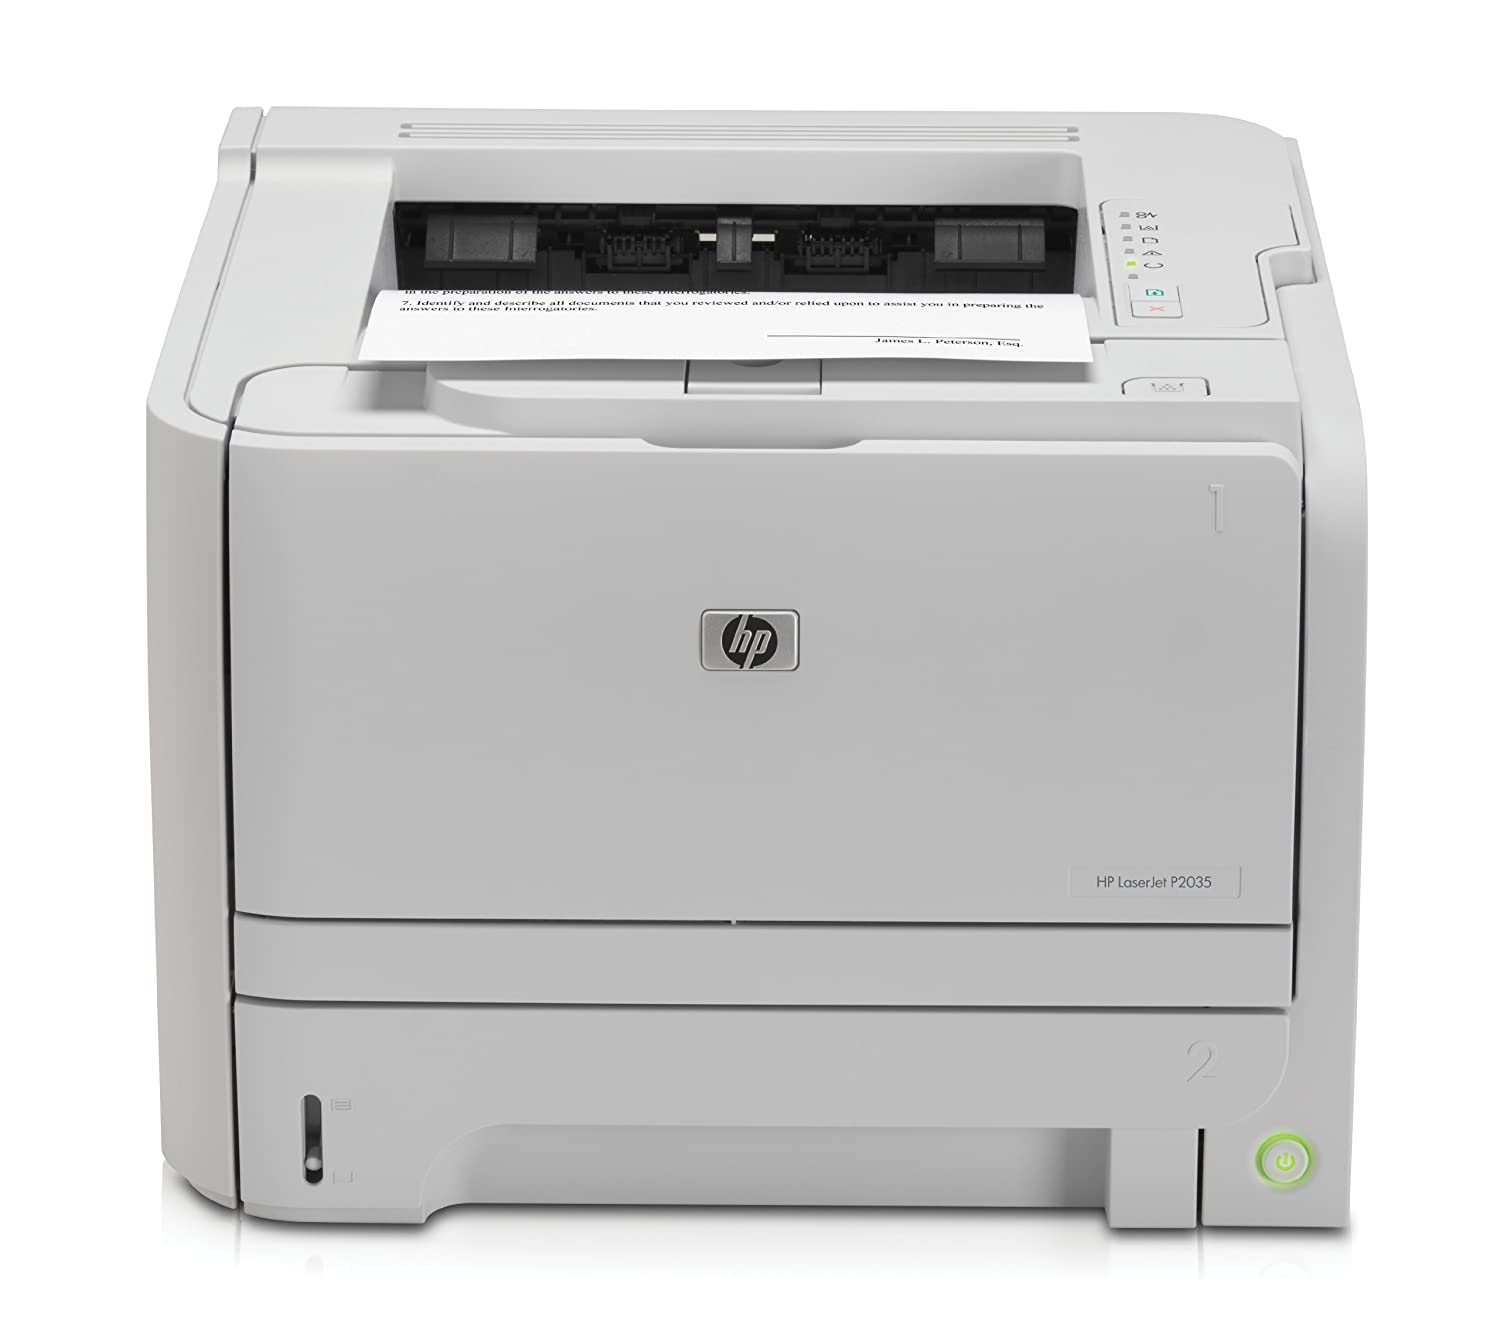 HP Laserjet P2035 Printer (Certified Refurbished)